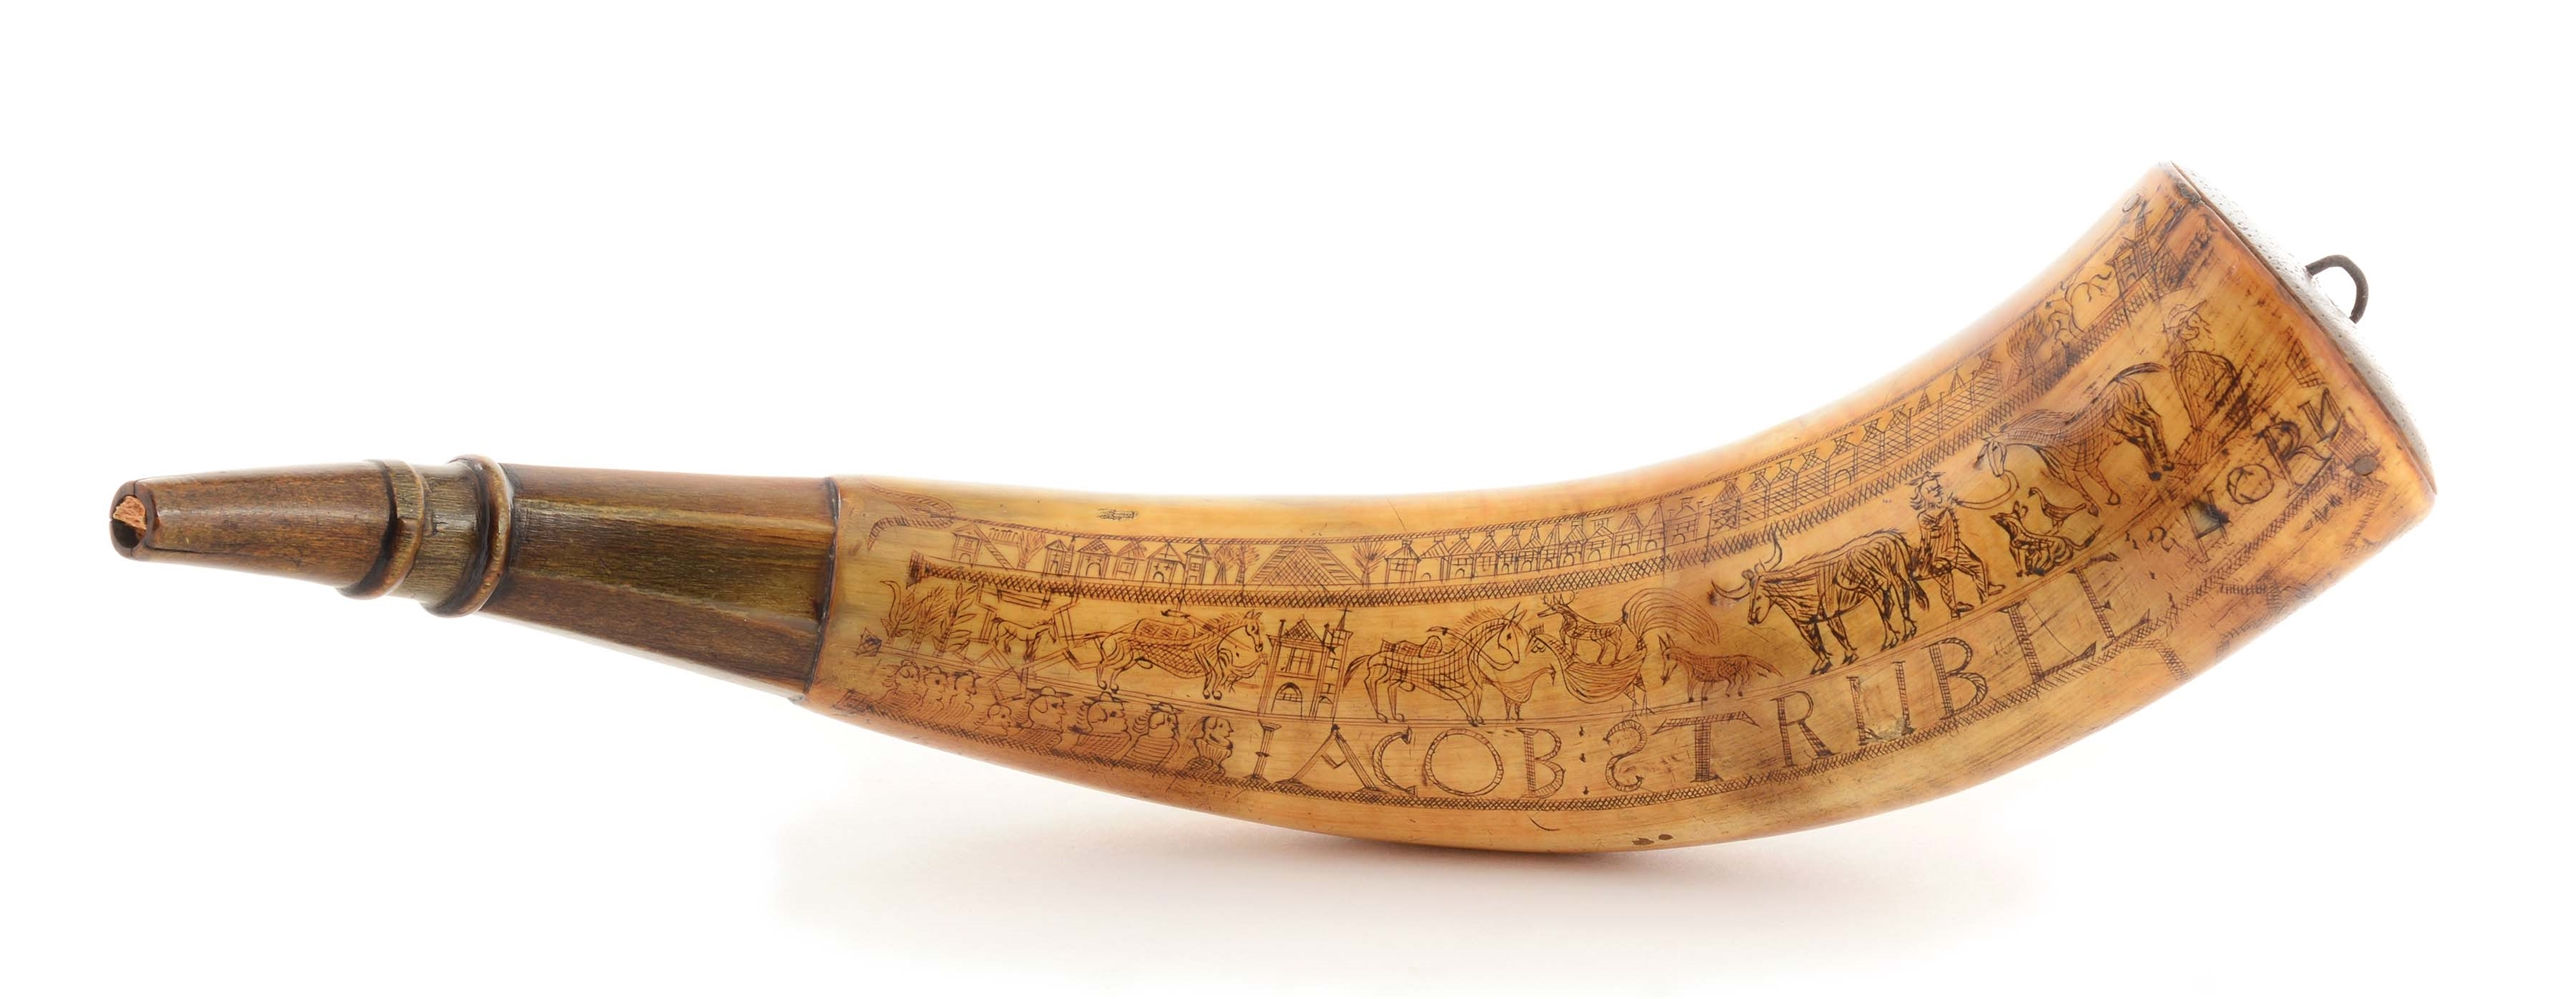 LARGE ENGRAVED POWDER HORN OF JACOB STRUBLE.